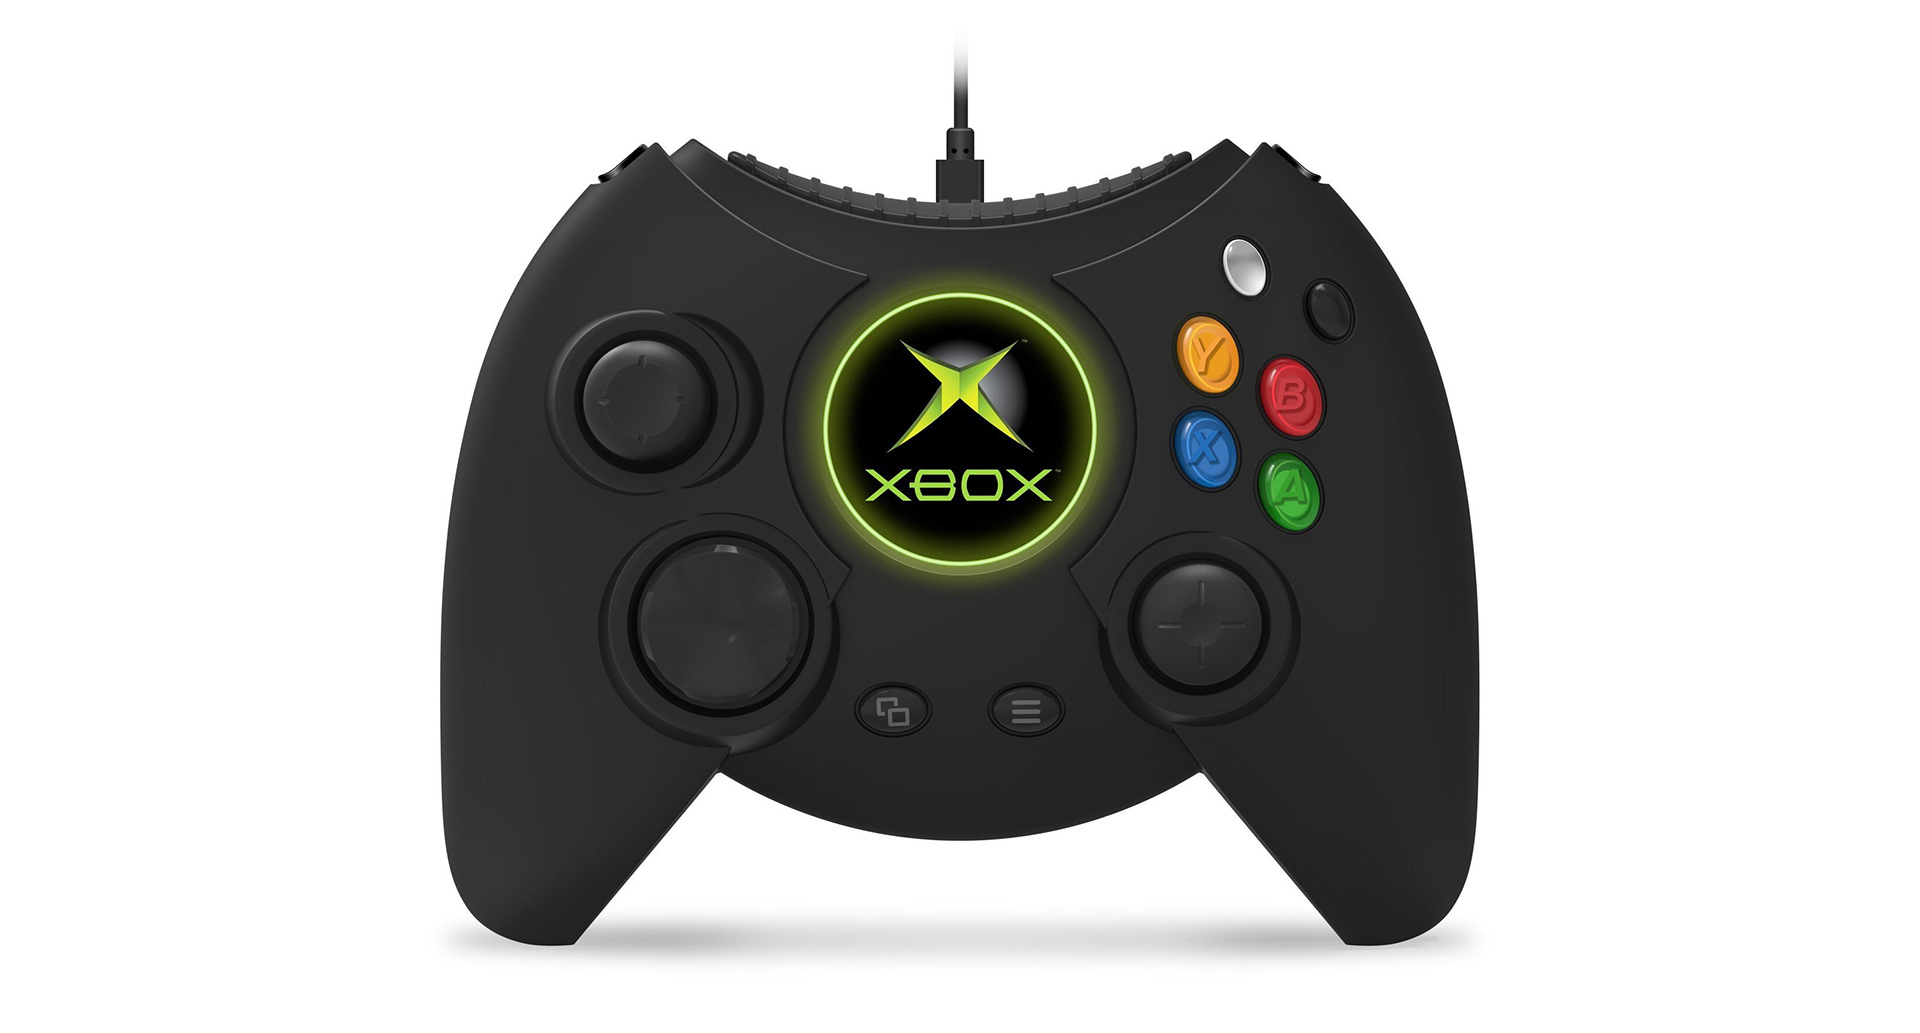 Xbox One is getting a new 'Duke' controller for $70 screenshot